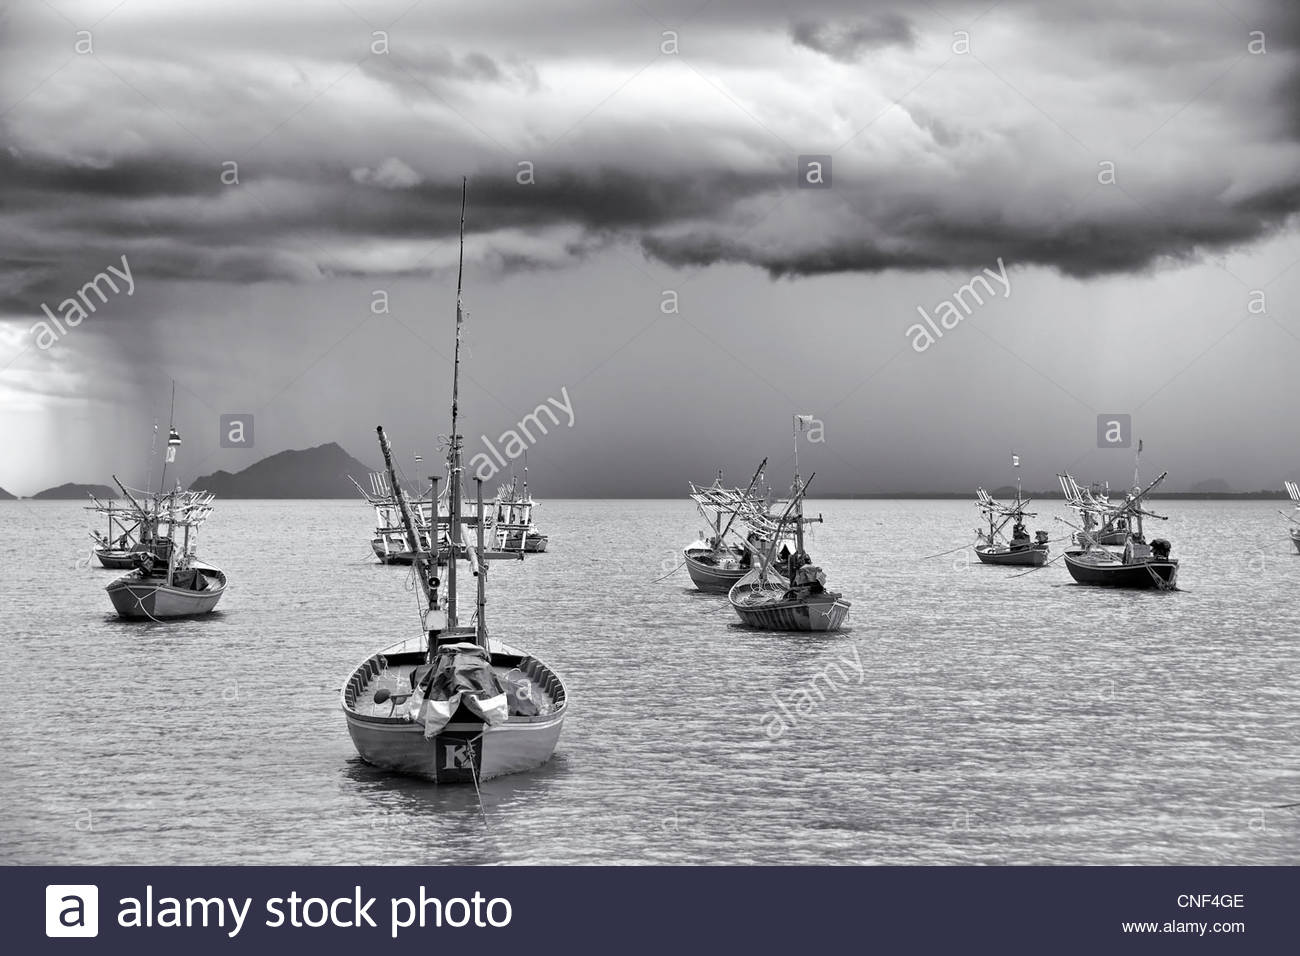 Stormy skies with visible descending rain moving into a fishing harbor Black and white photography - Stock Image